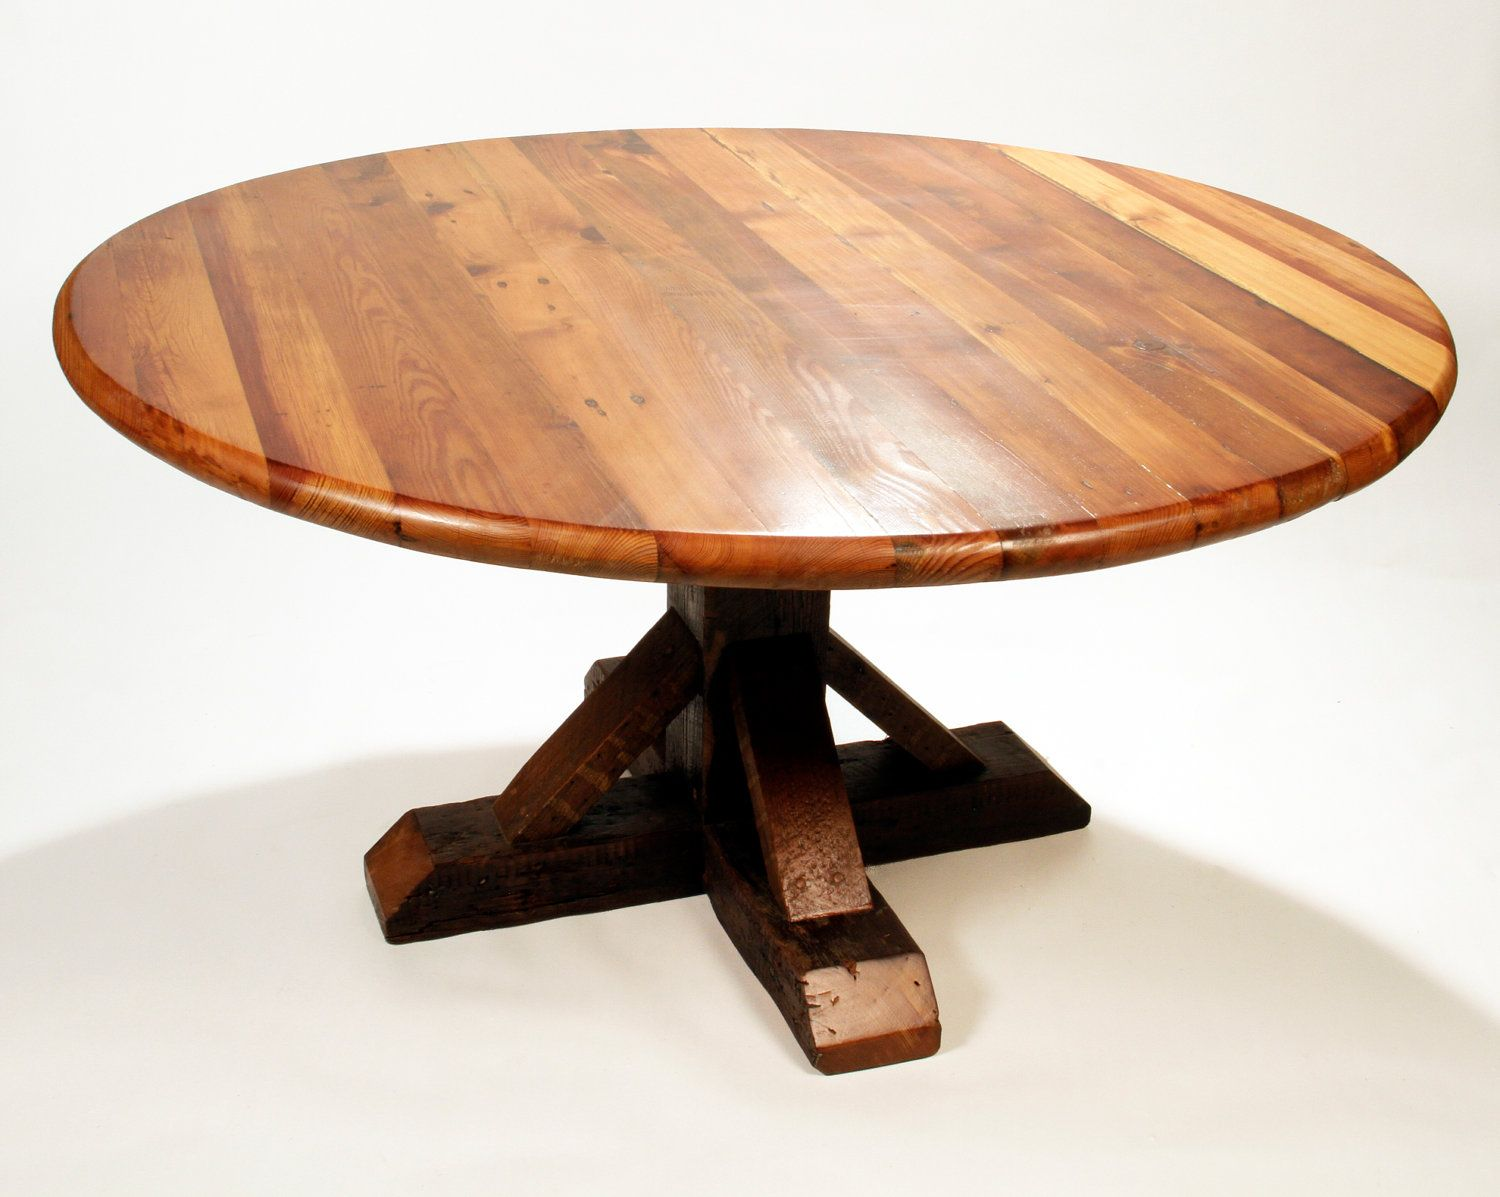 Reclaimed Wood Tables Round - Reclaimed wood dining table round antique heart pine reclaimed sustainable eco friendly modern rustic